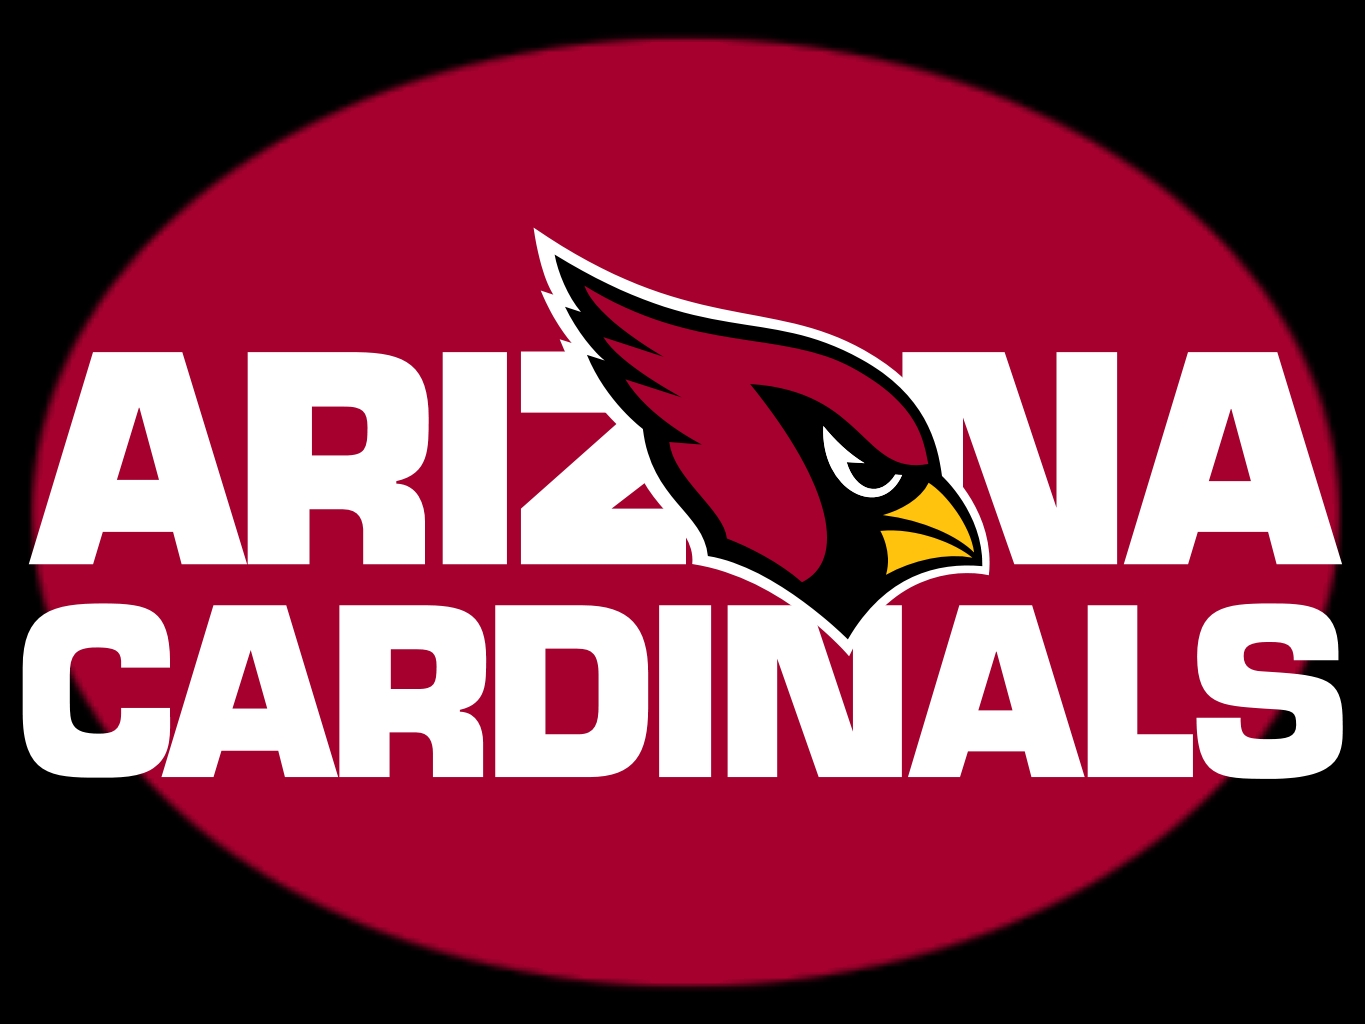 Arizona cardinals logo wallpaper wallpapersafari - Arizona cardinals screensaver free ...